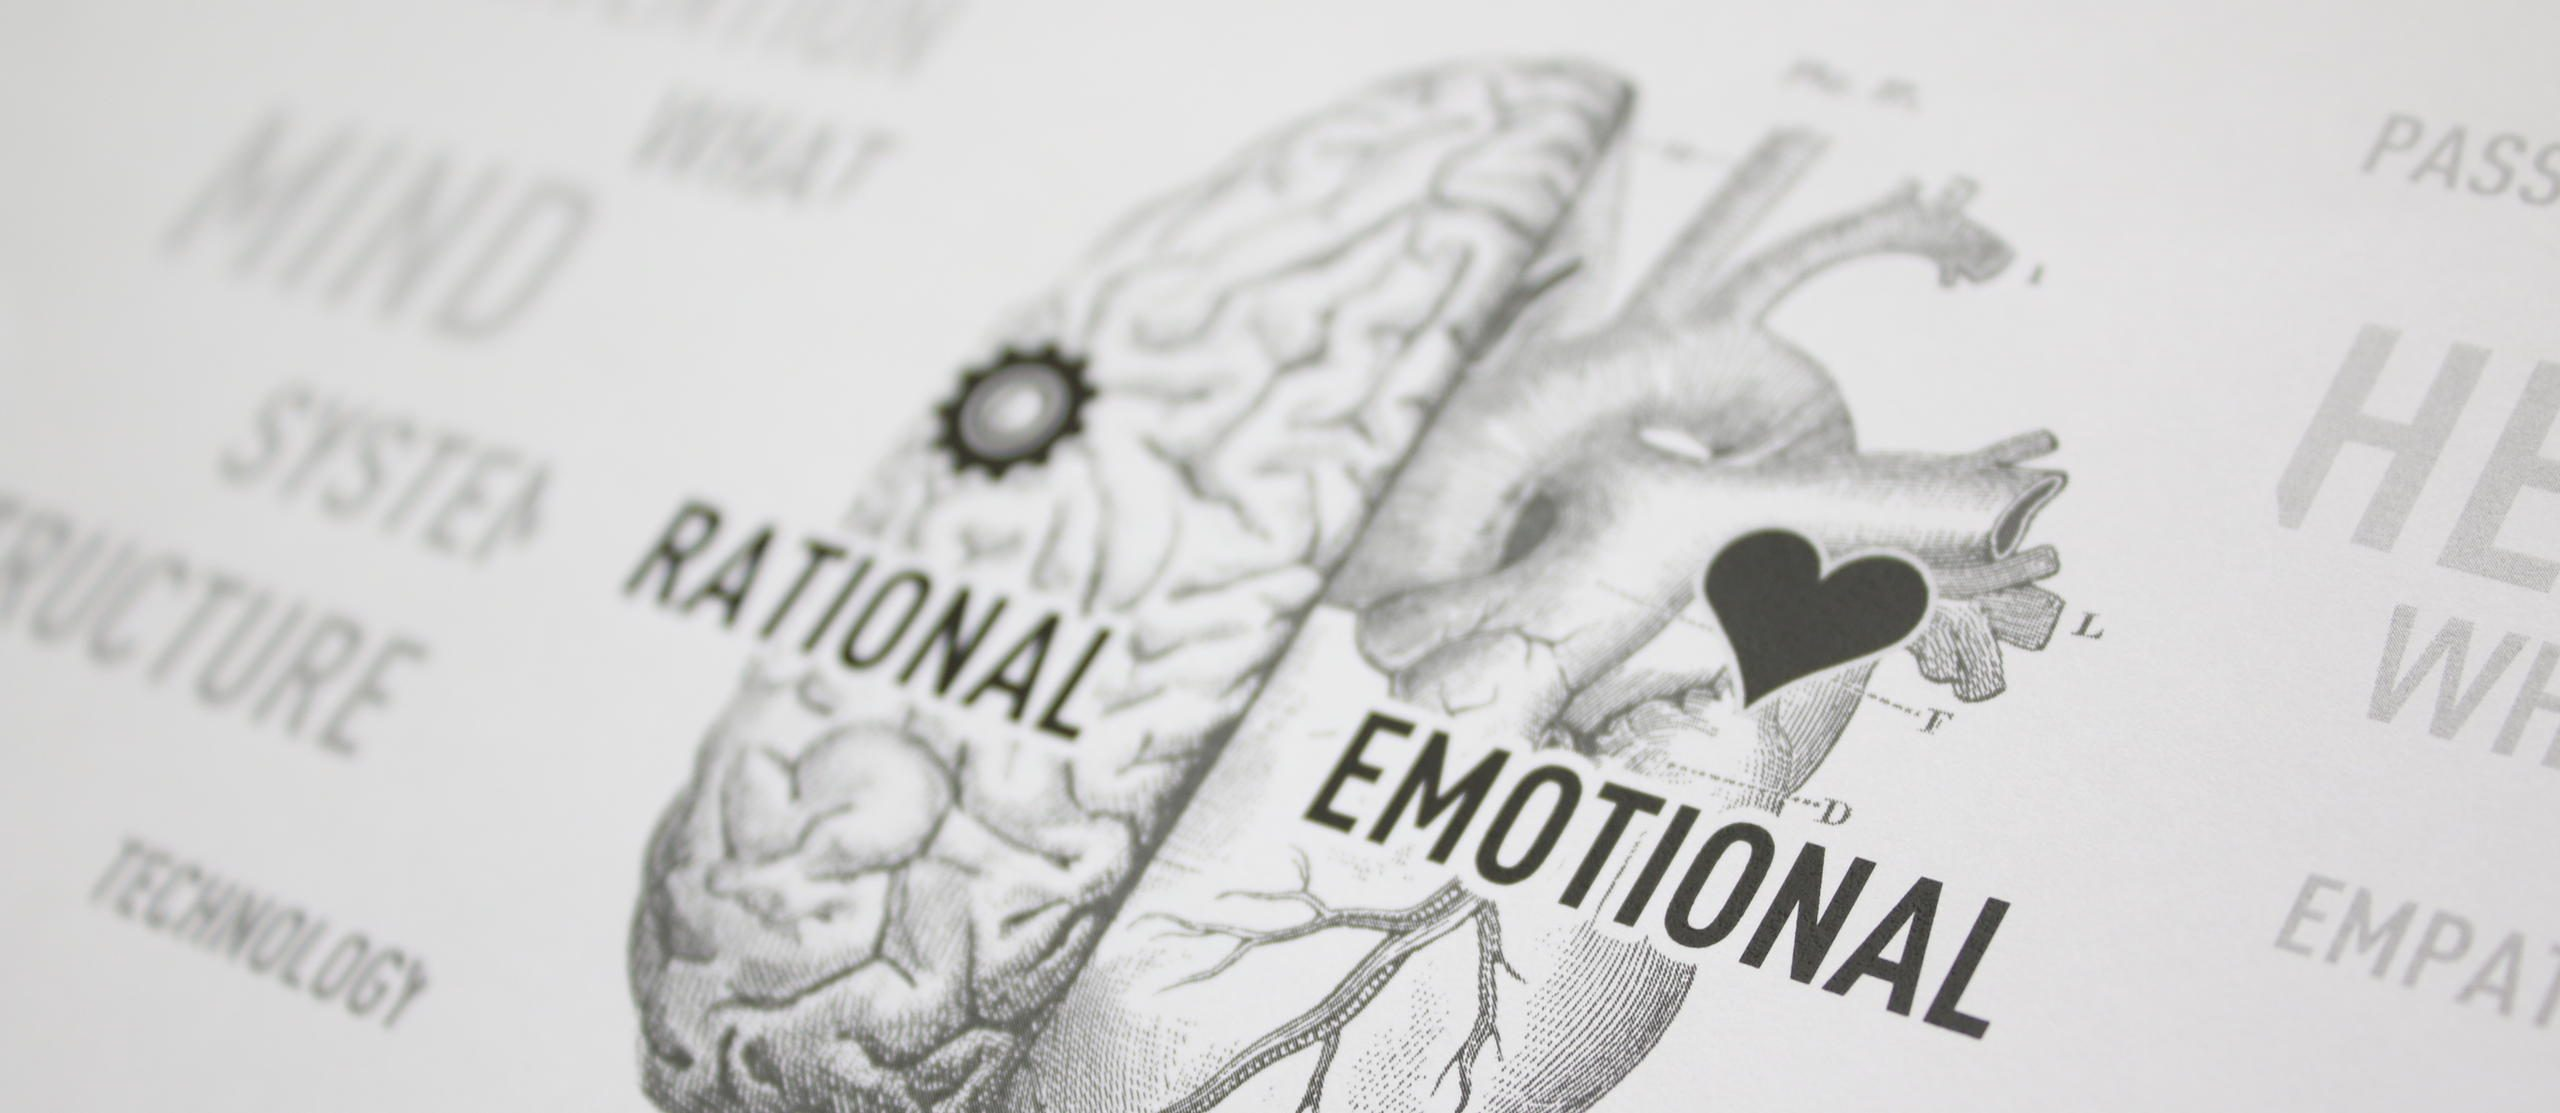 rational and emotional thought